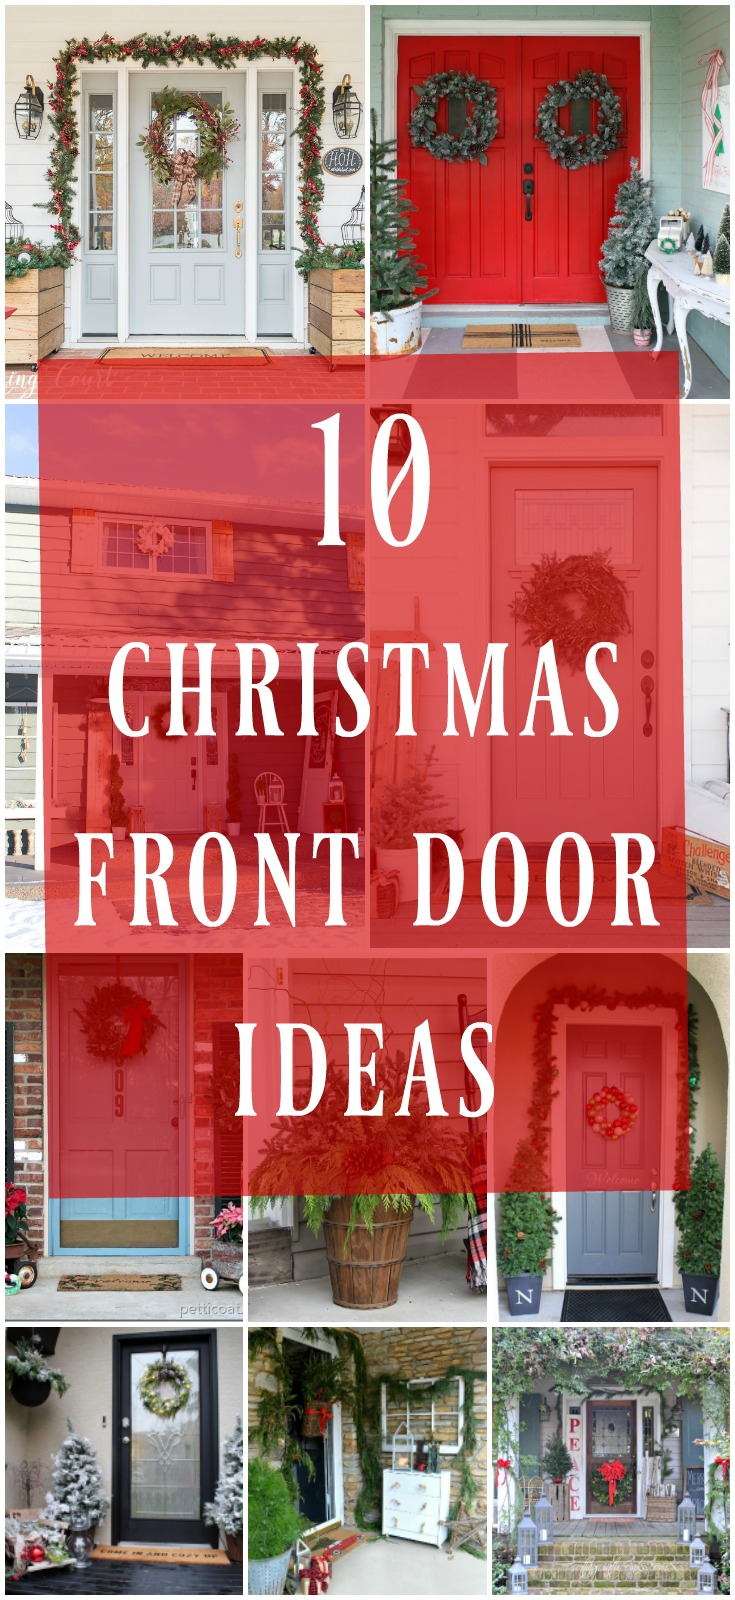 10 christmas front door decor ideas day 11 12 days of for 12 days of christmas door decoration